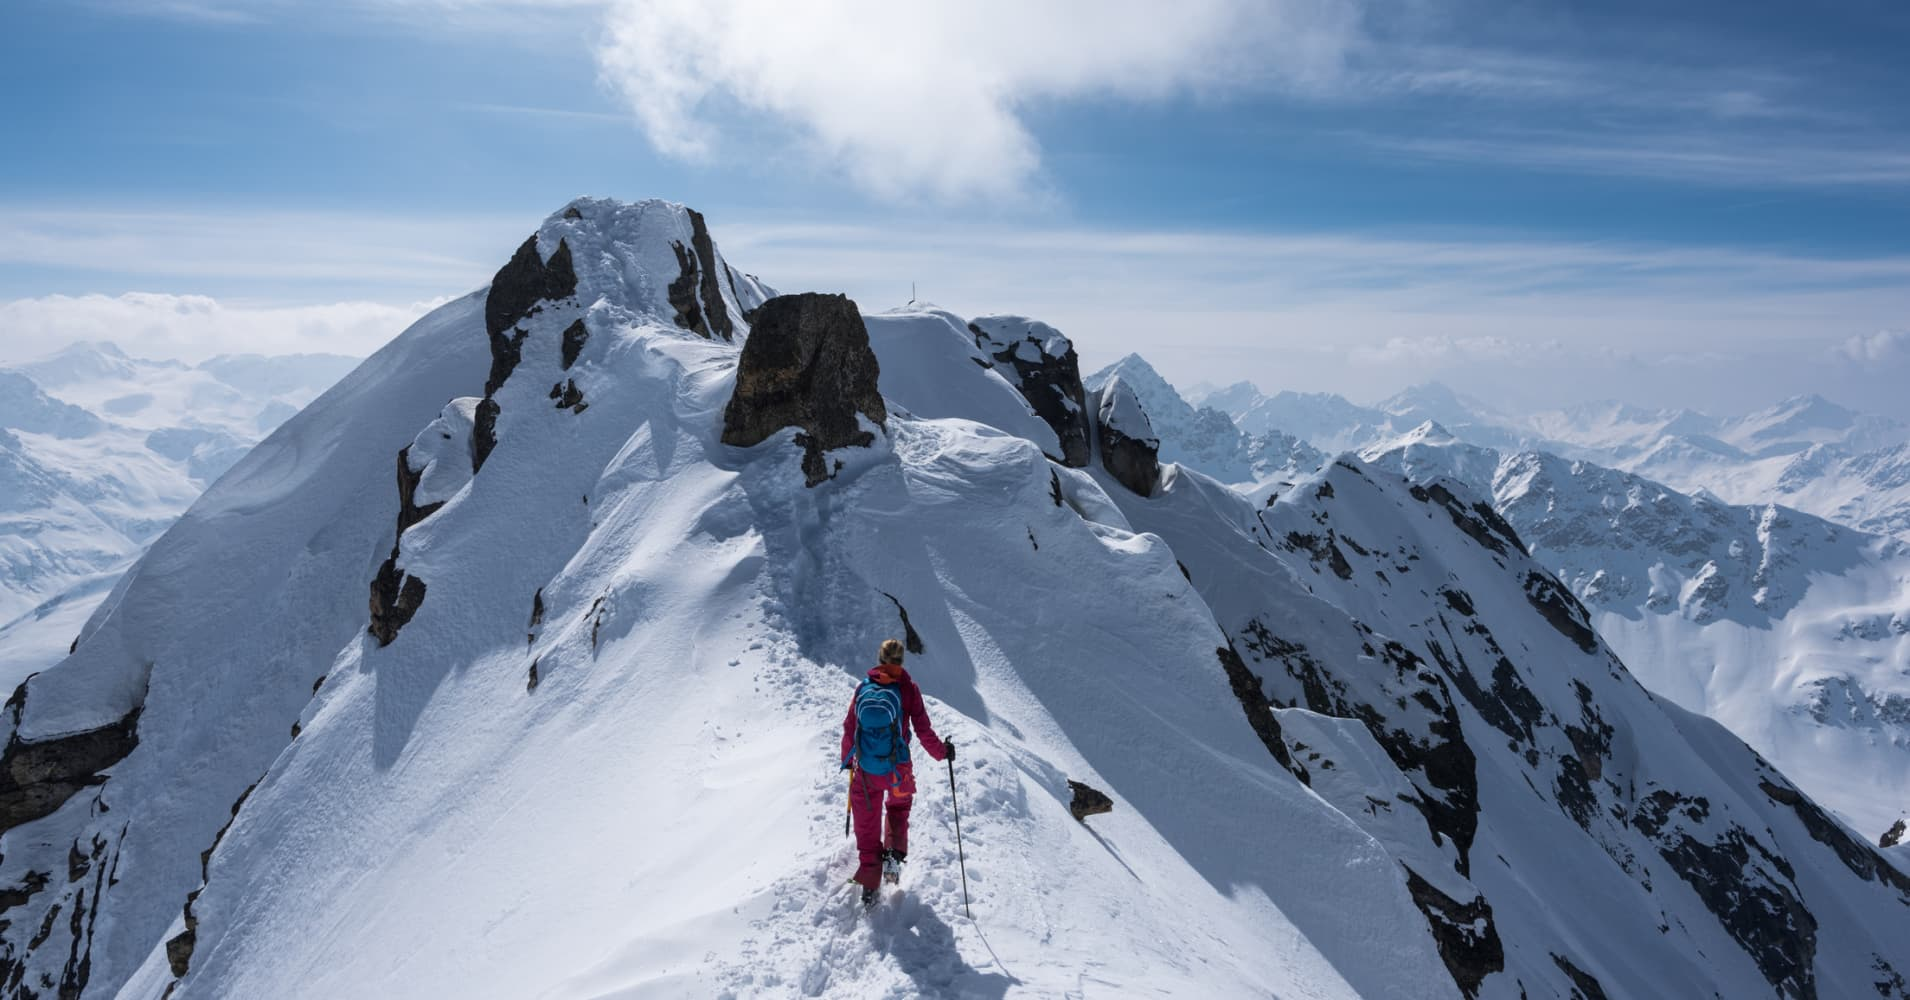 Ski mountaineering at the Flüela Schwarzhorn, Switzerland